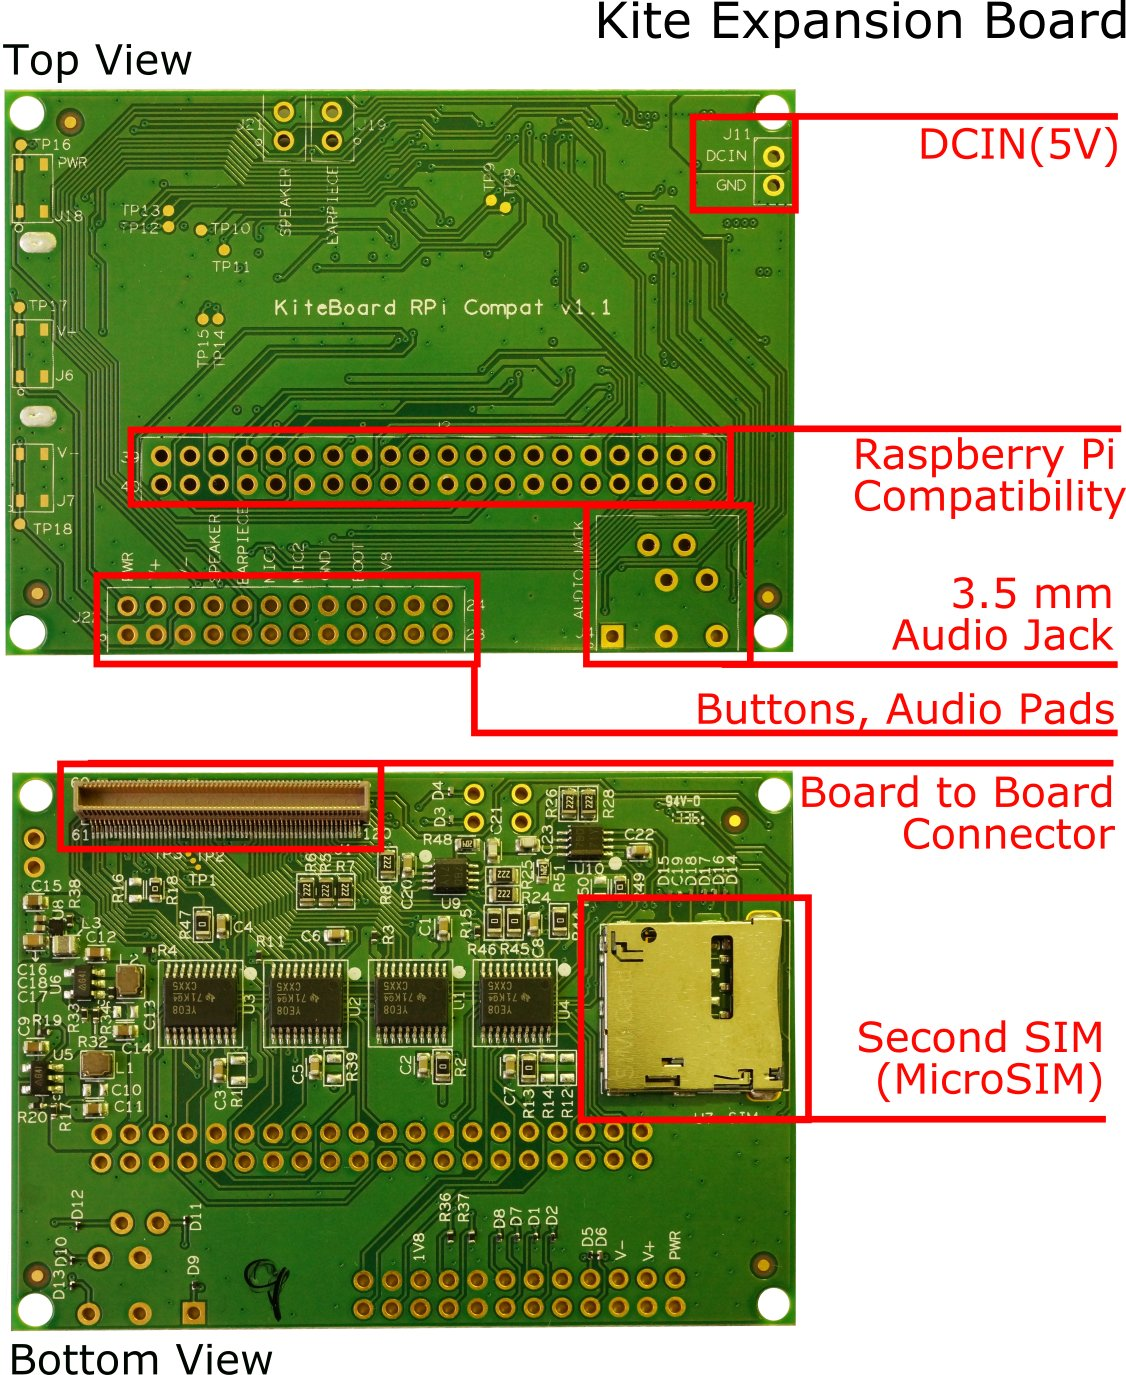 Kite expansion board functionalities